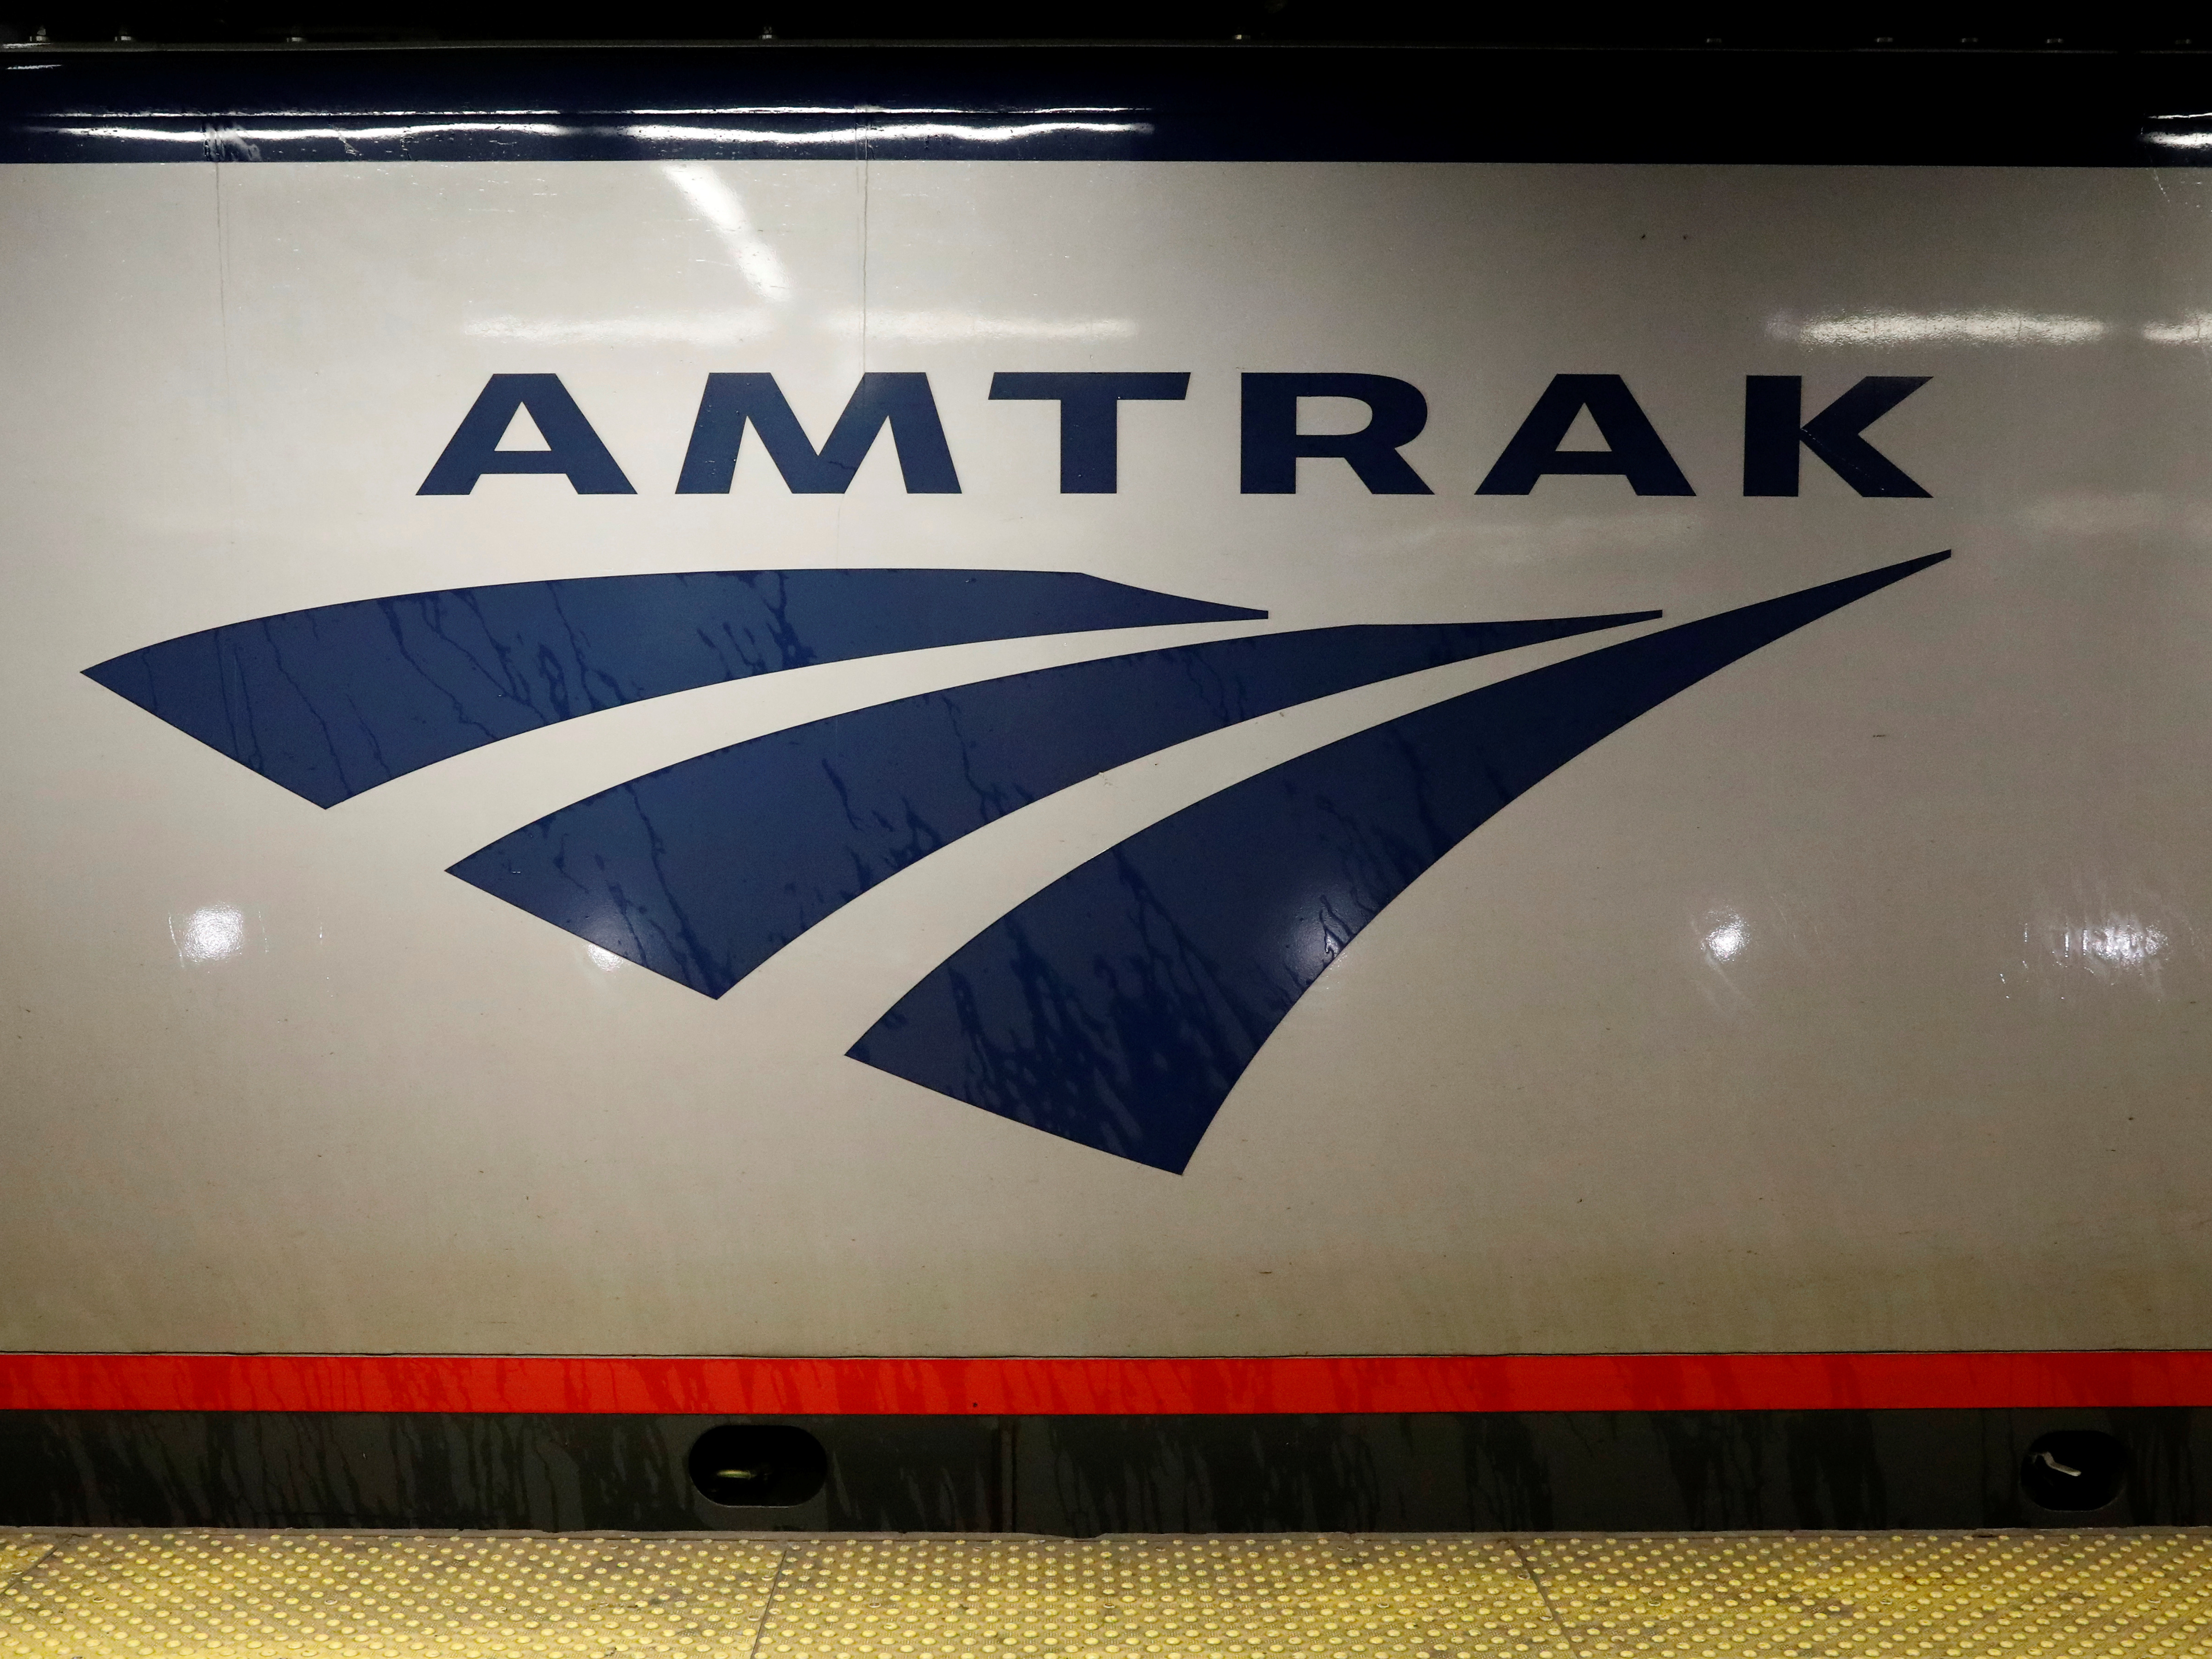 Amtrak To Drop $25,000 Ticket Price For Two Wheelchair Users After Complaints